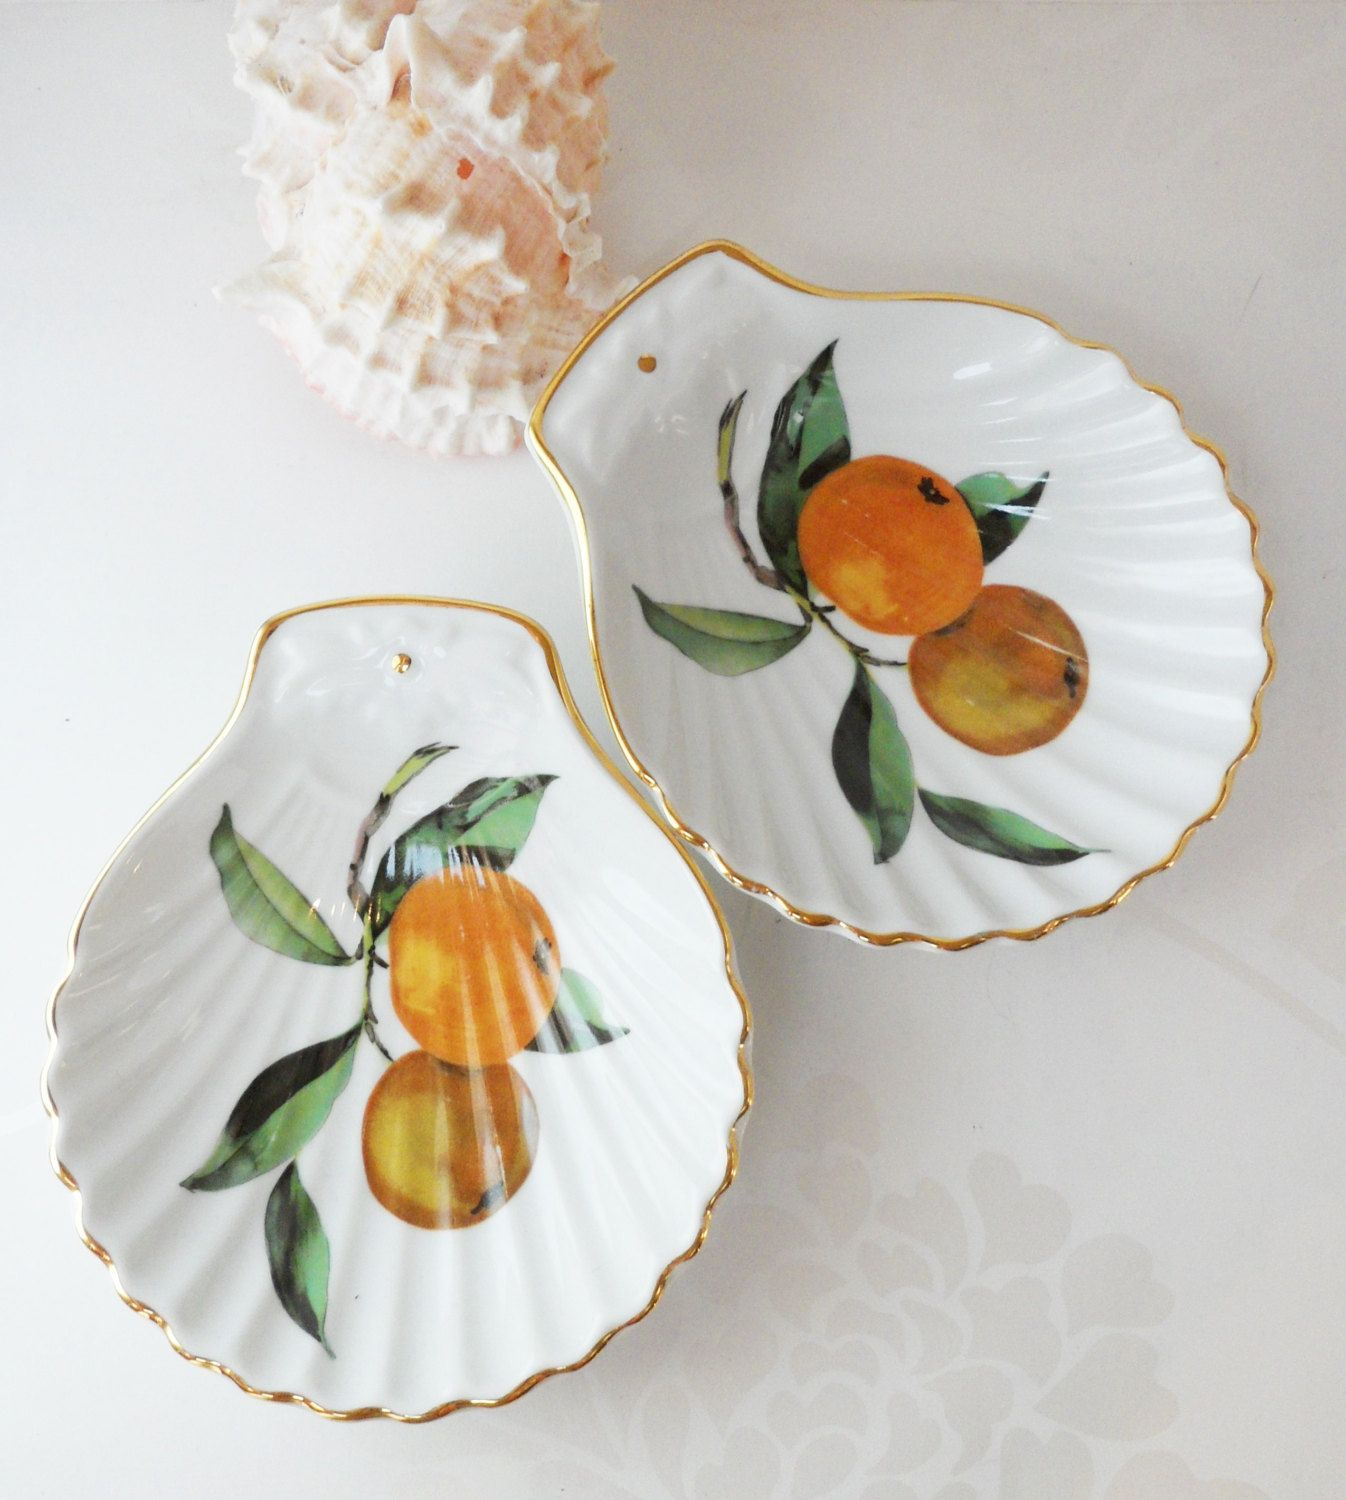 Royal Worcester Clam Shell Dish Pair Evesham Gold Pattern Vintage Porcelain  Oven To Table Ware Serving